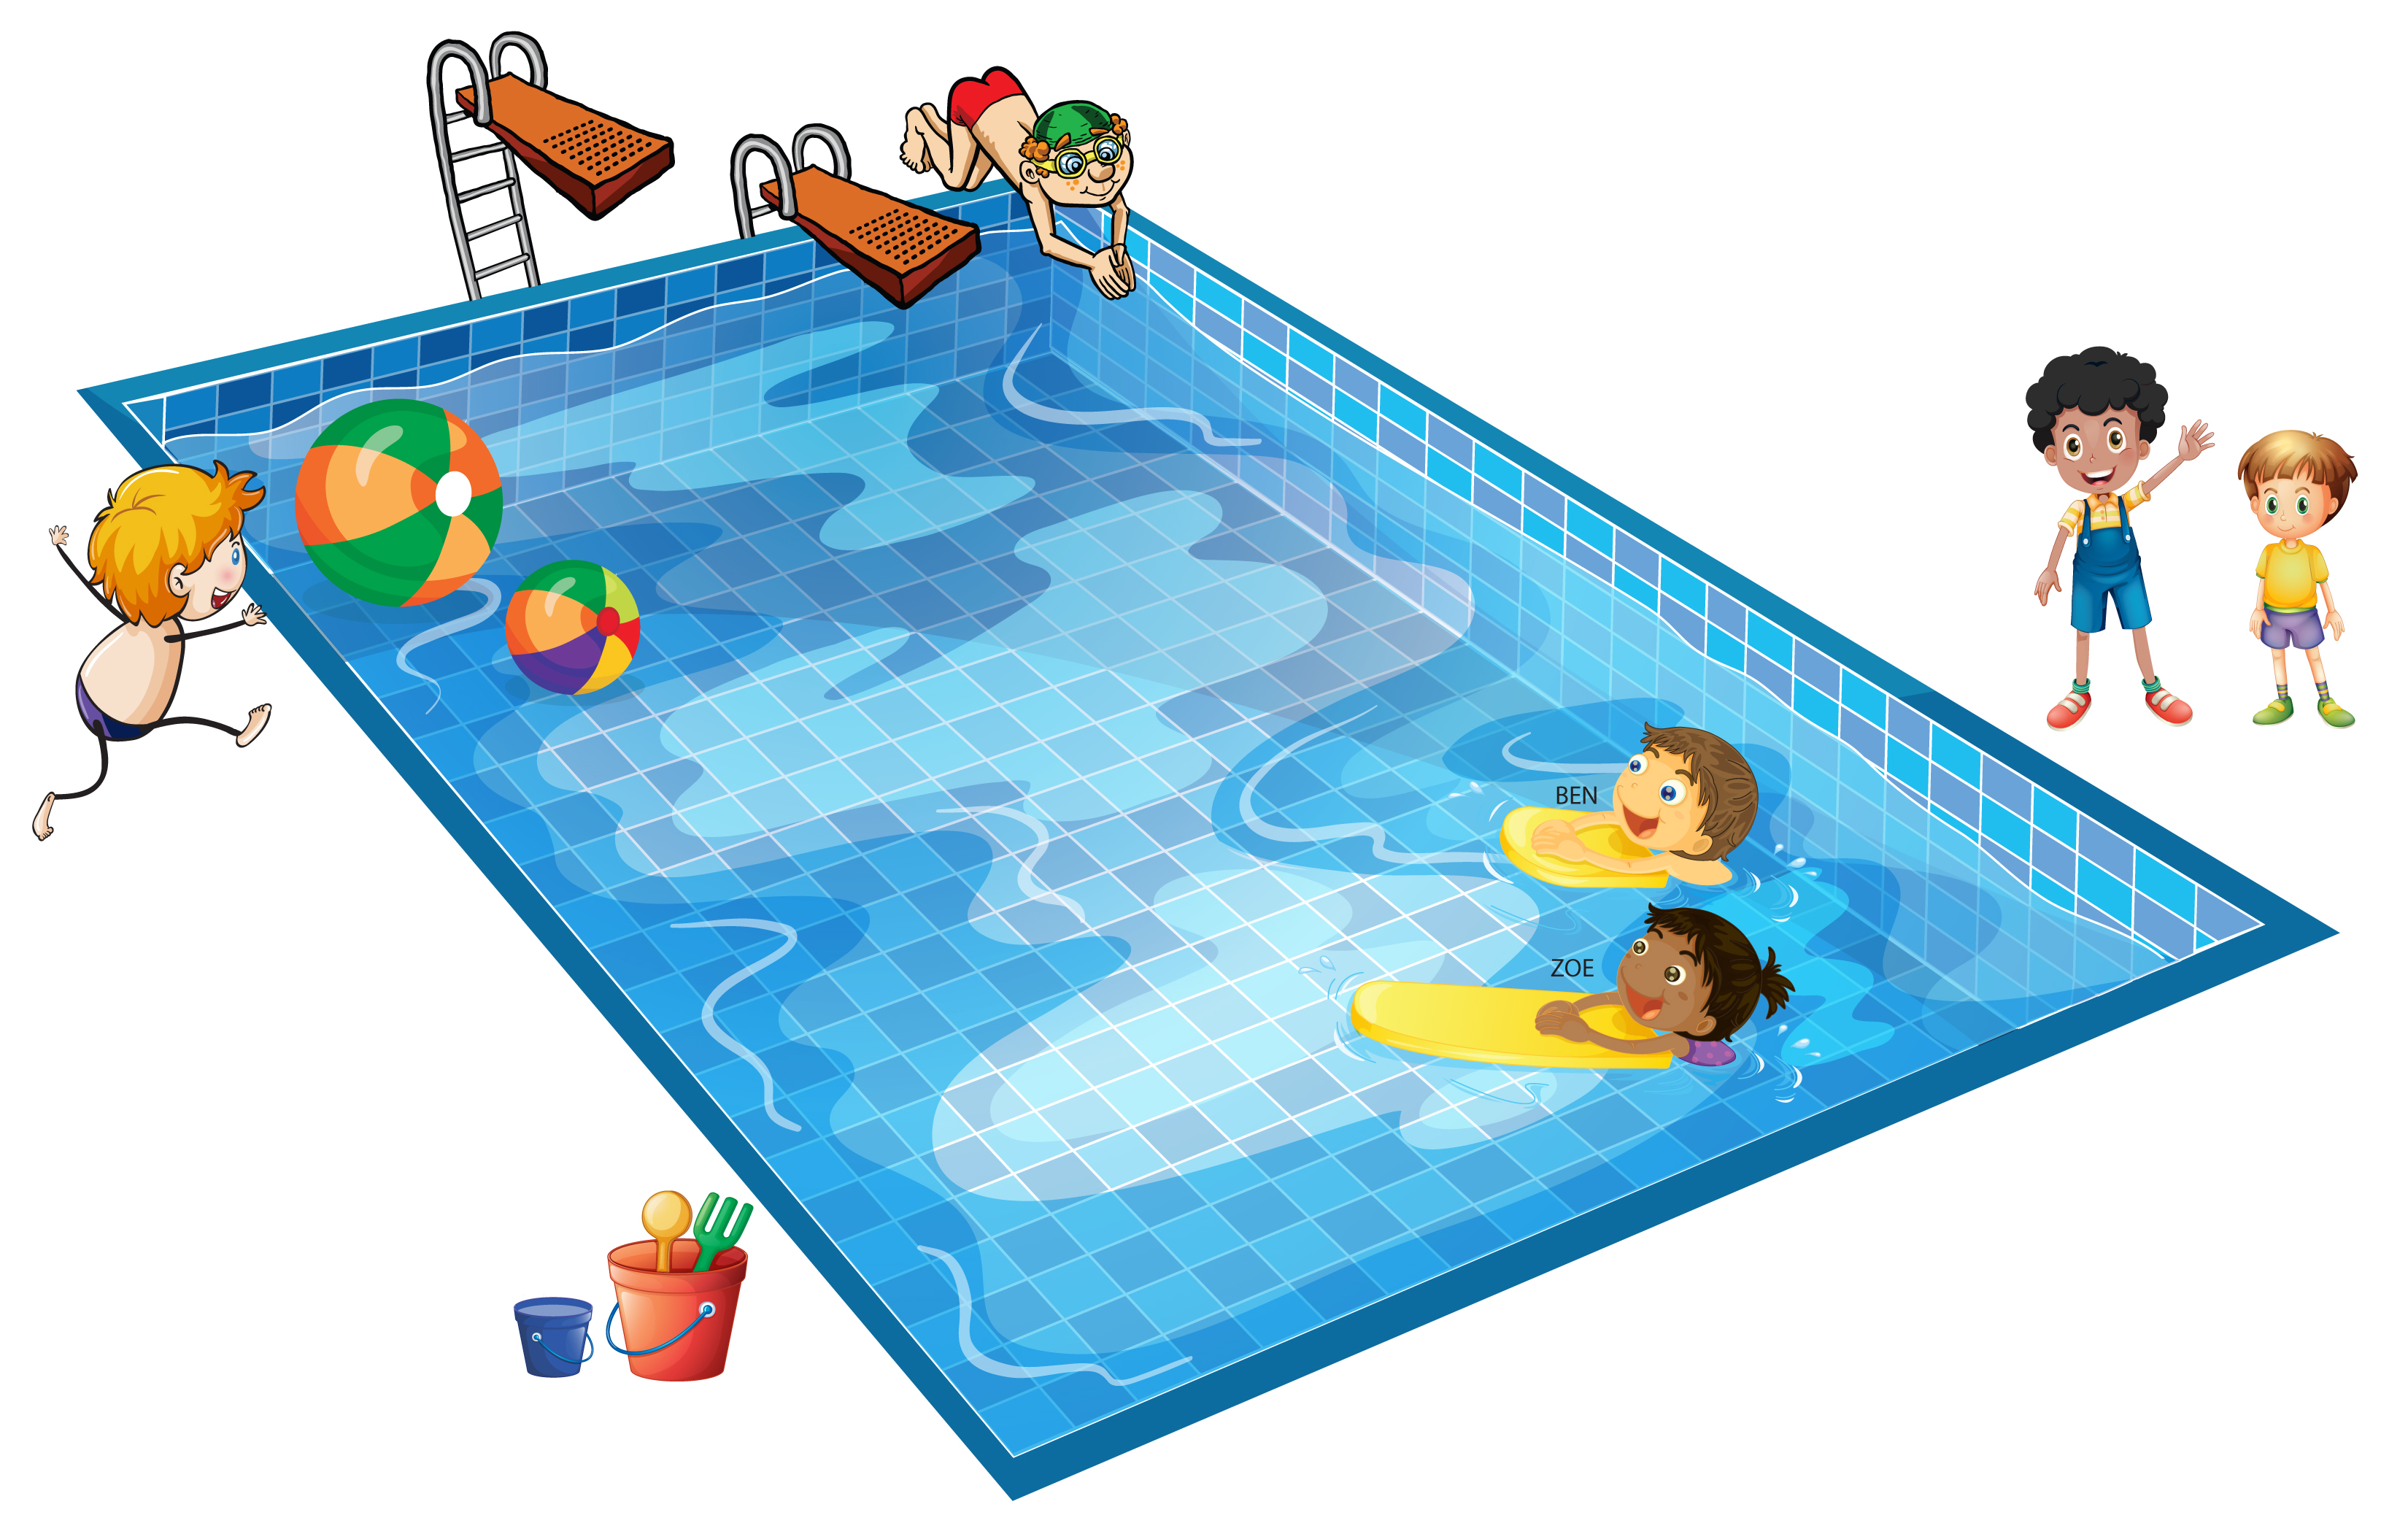 Children swimming at a pool.